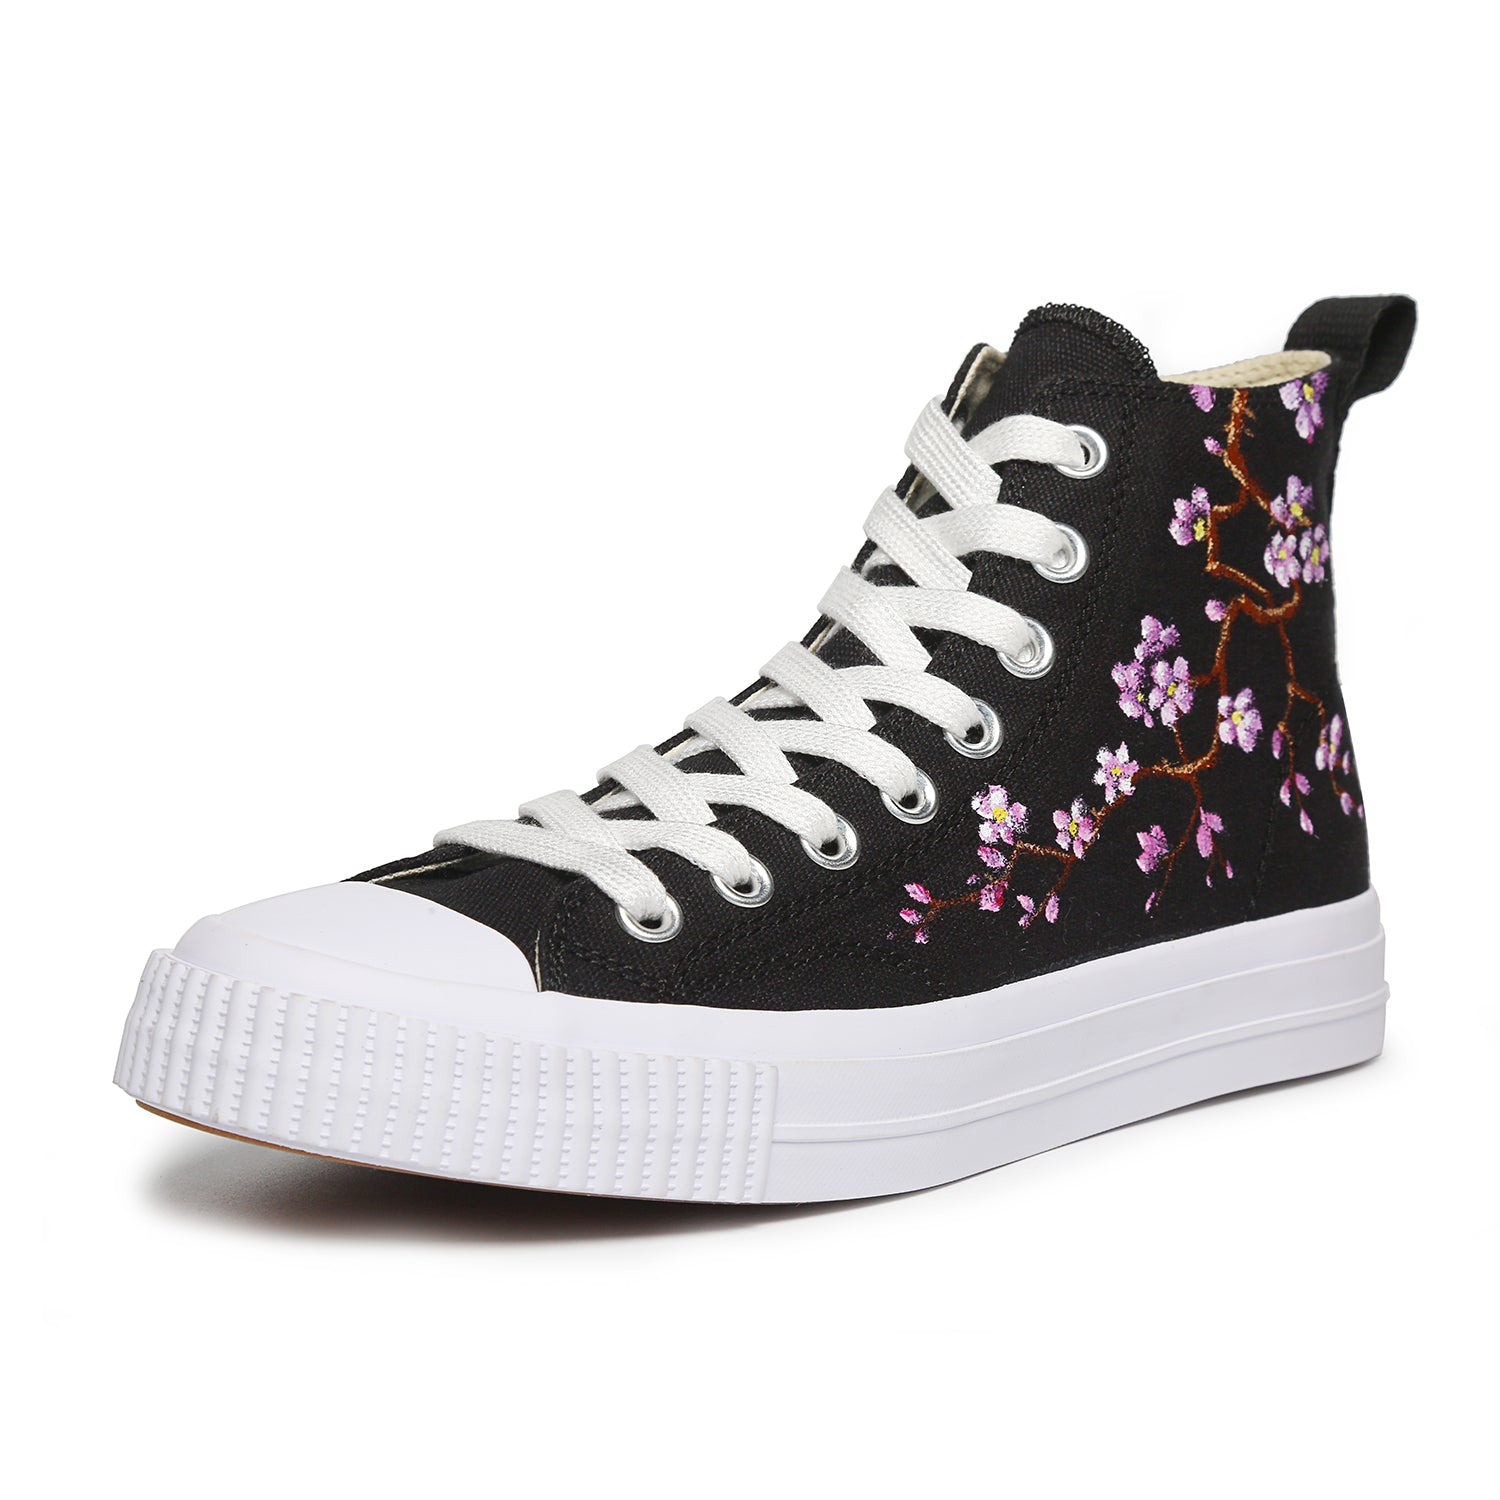 Women Painted Shoes High Top Sneakers